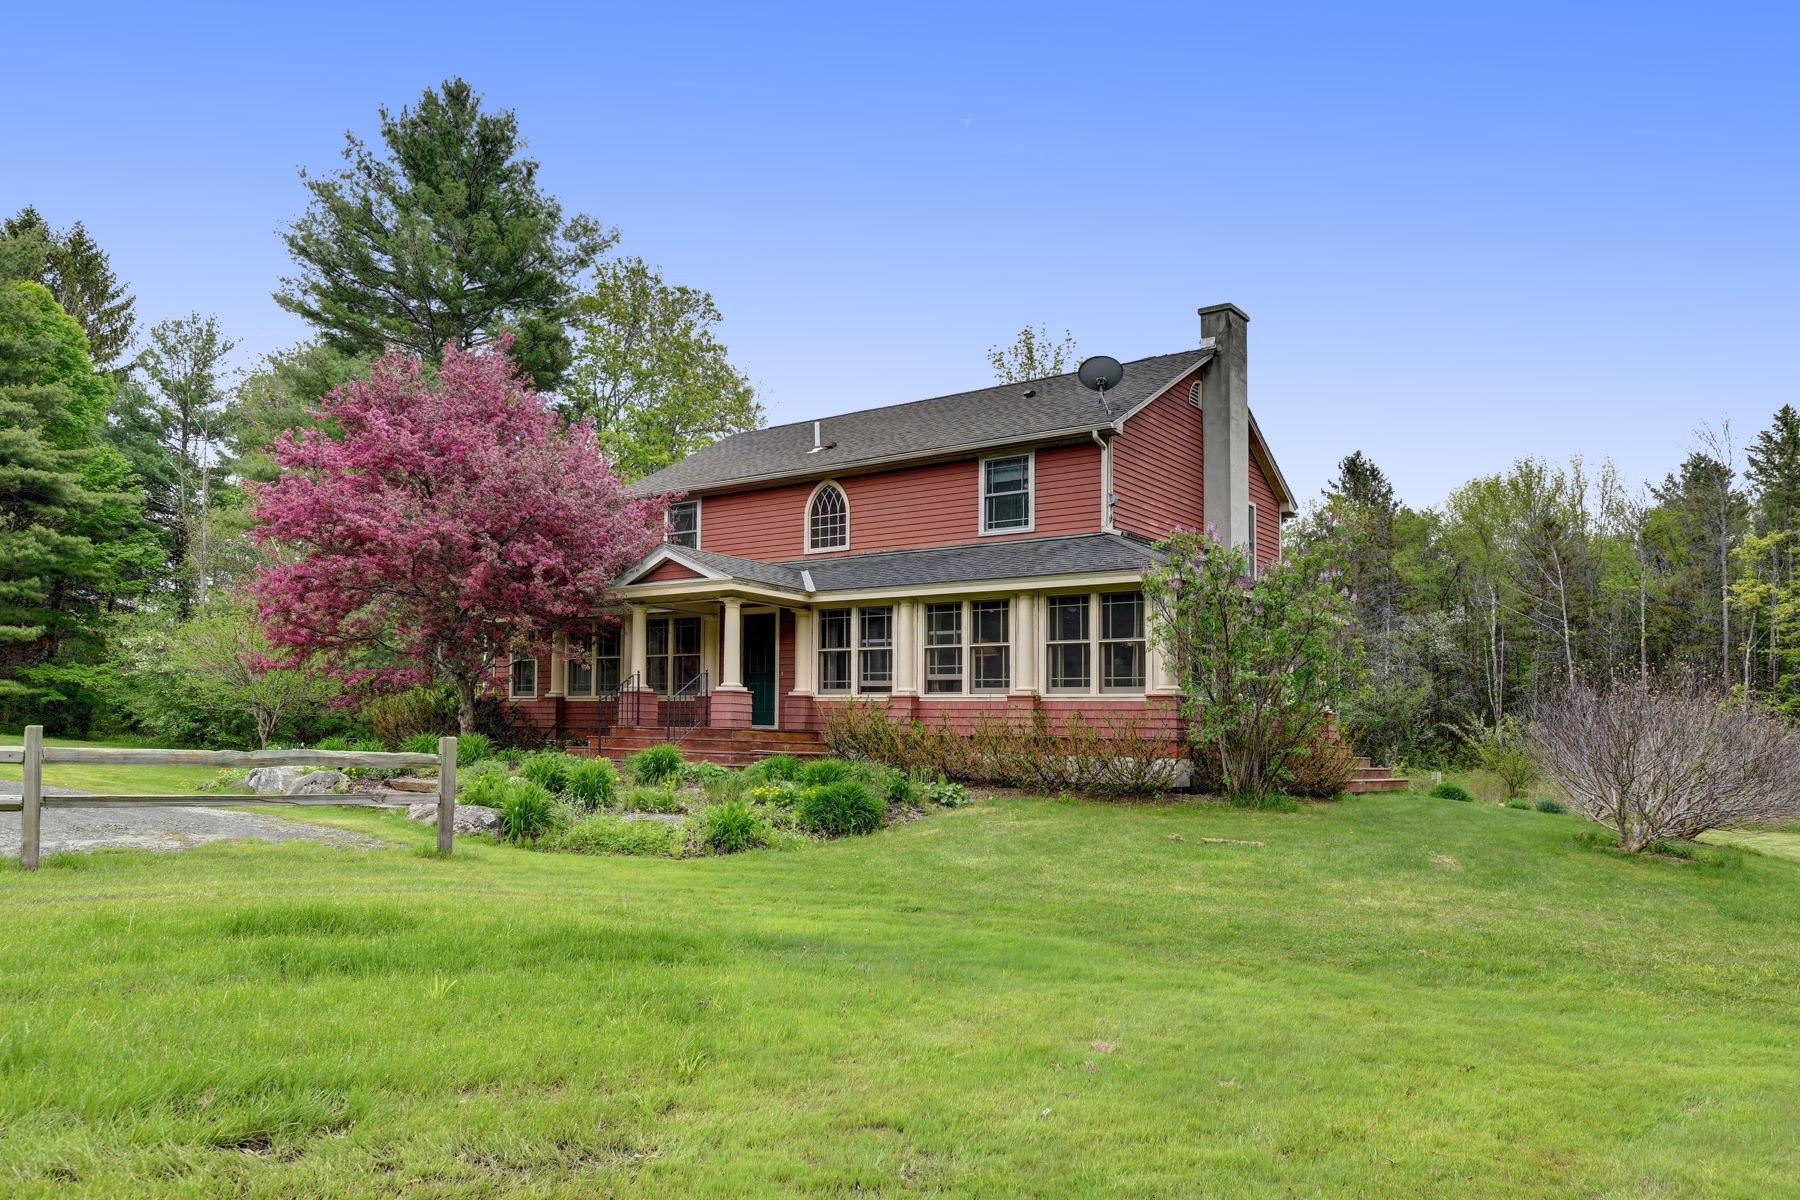 Single Family Homes for Active at Country Living 1 Old Tree Farm Rd Stockbridge, Massachusetts 01262 United States